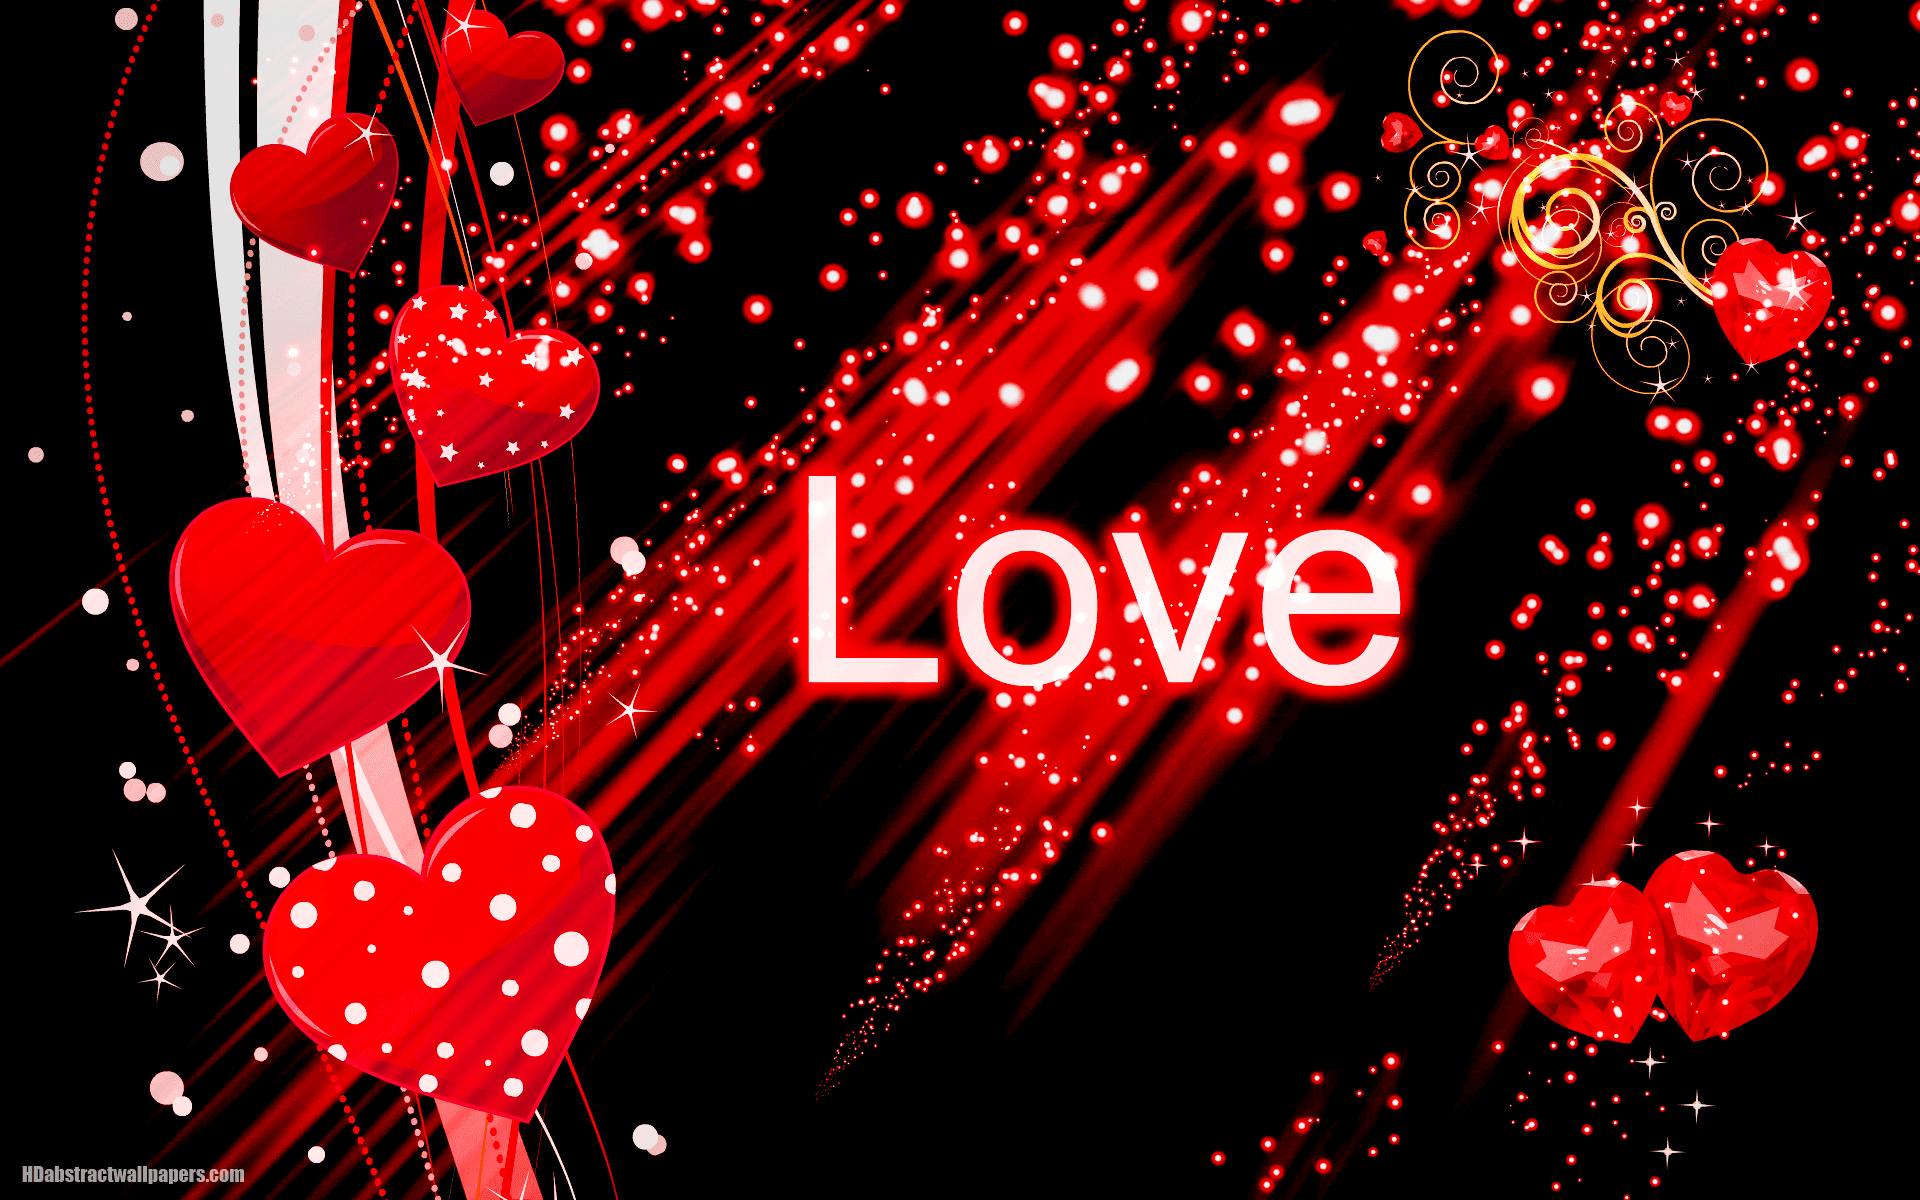 Love Wallpapers Only : Beautiful Black Love Wallpaper